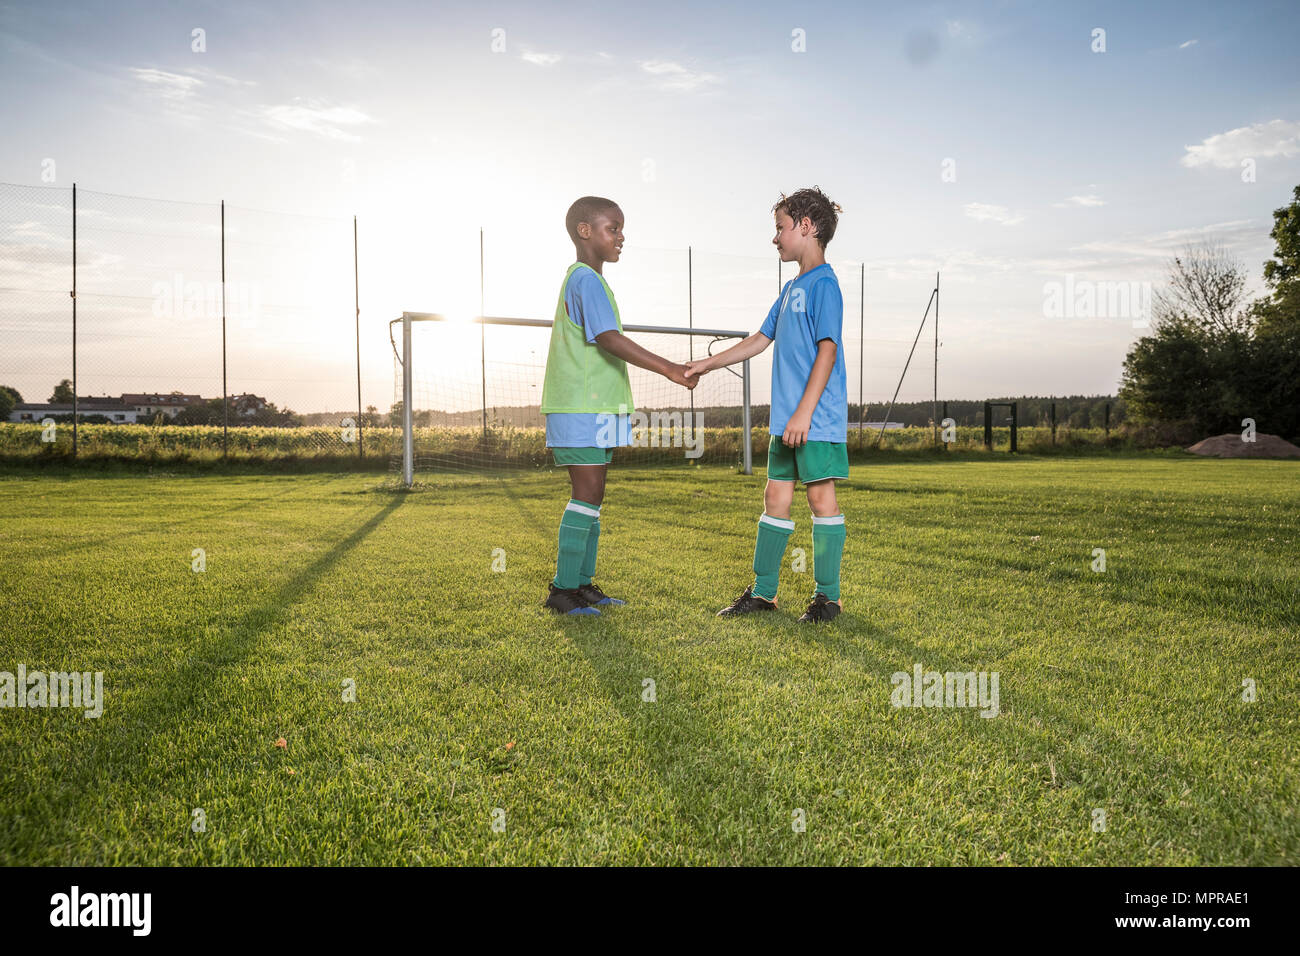 Young football players shaking hands on football ground - Stock Image